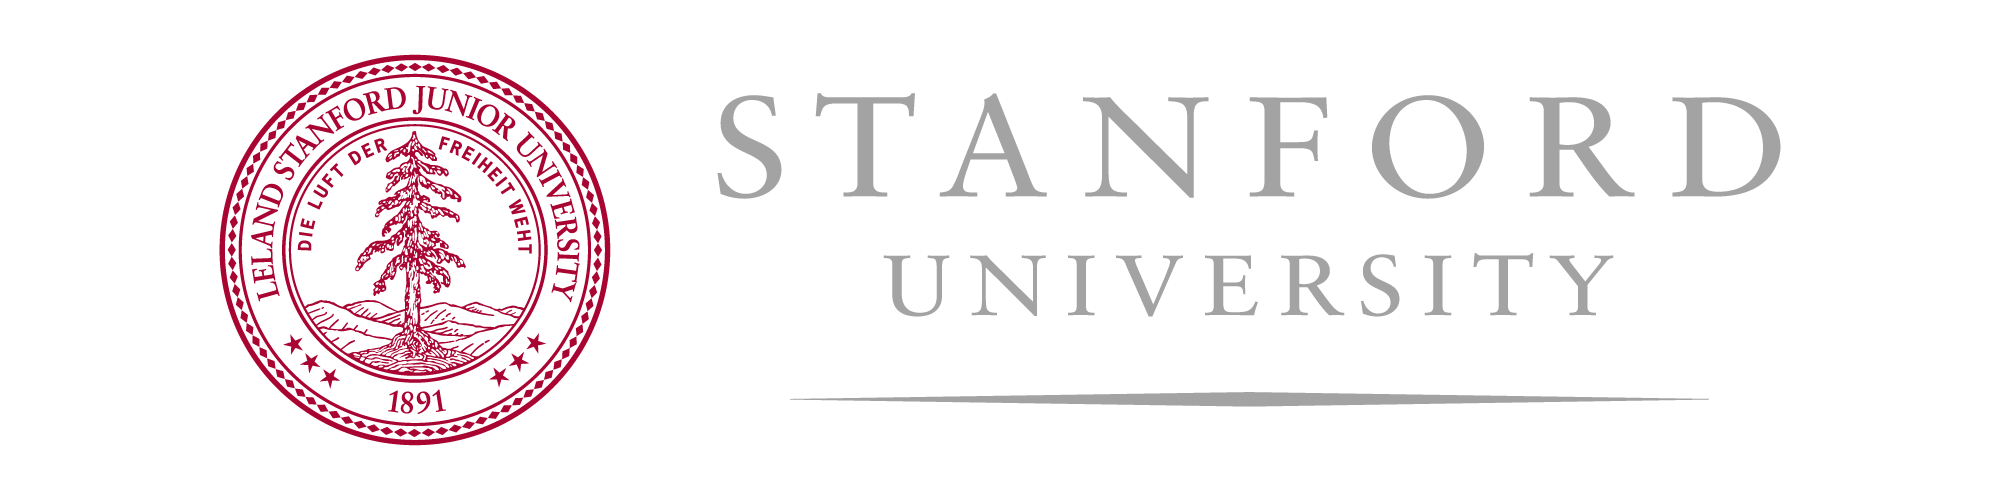 Standford University Logo - stanford-university-logo - Fibrolamellar Cancer Foundation